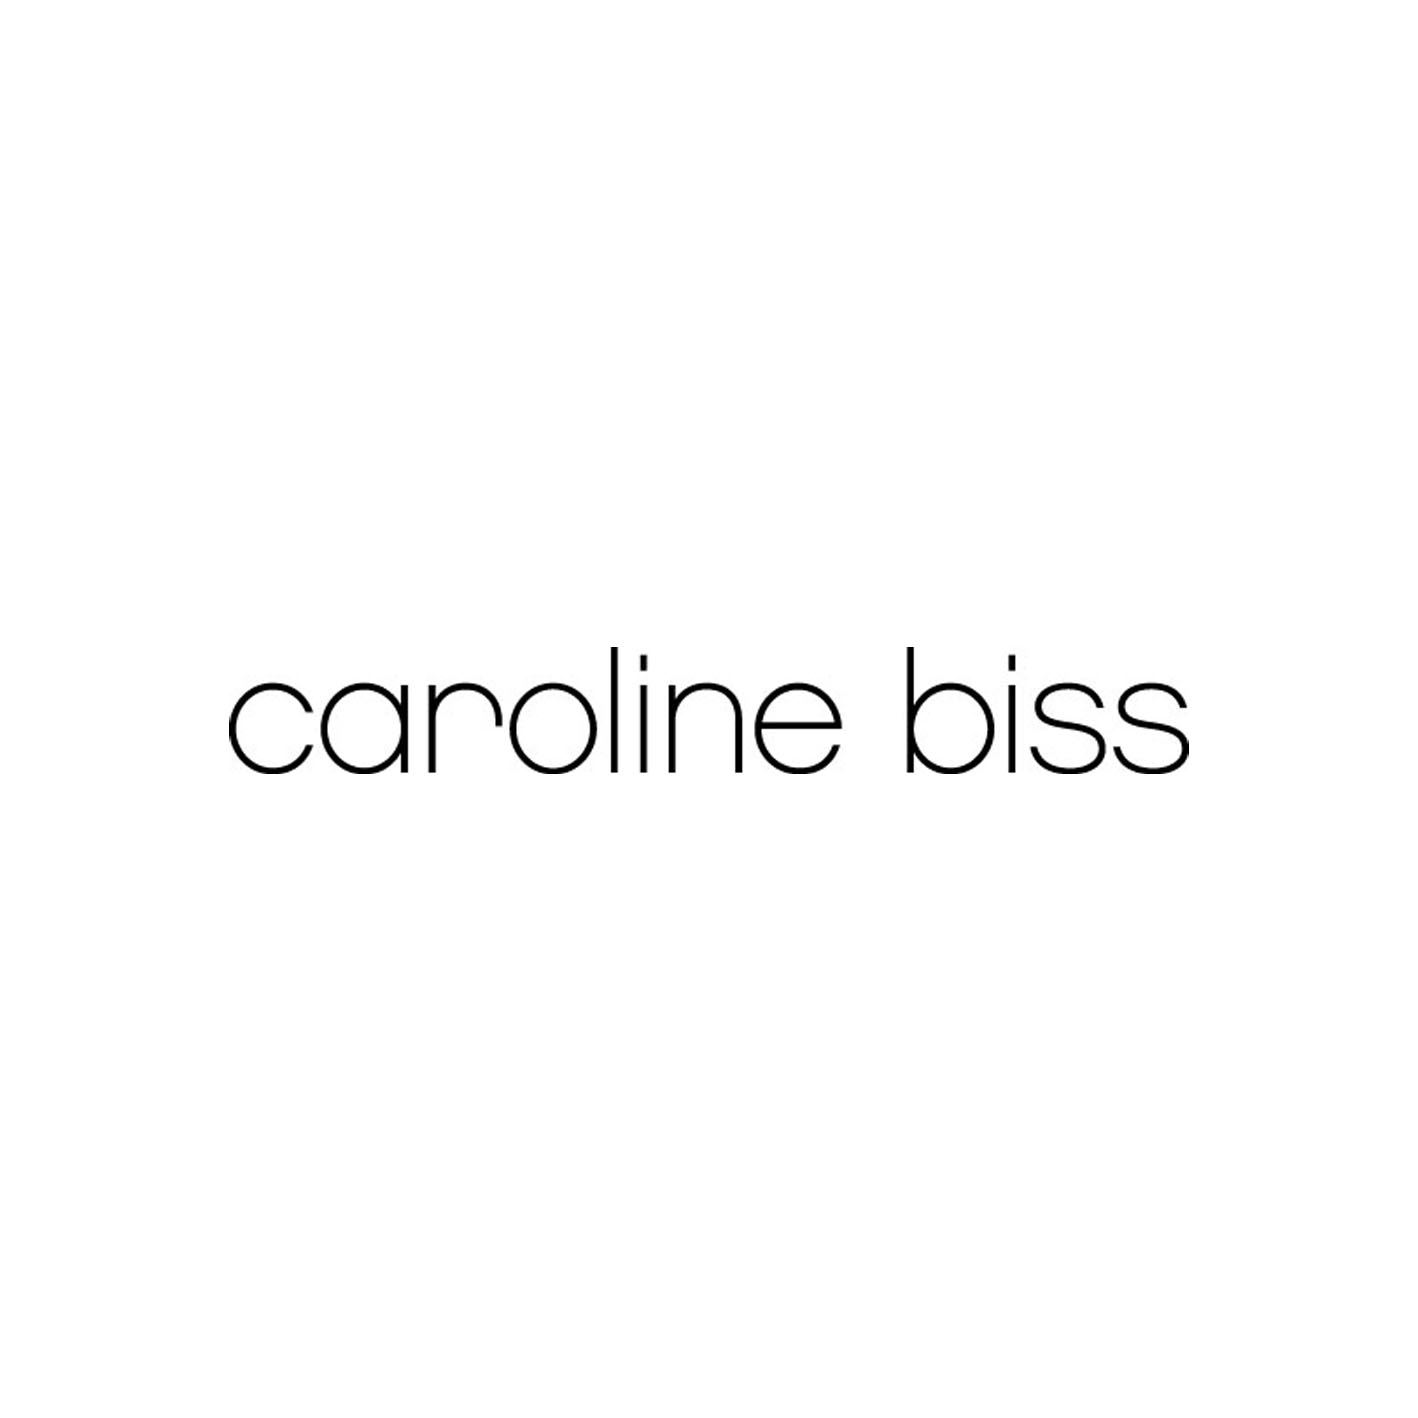 """Caroline Biss - """"Style is an expression of individualism mixed with charisma.""""Caroline Biss offers the modern, self-confident woman elegant and classy women's fashions with glamorous style.Perfectly fitting ready-to-wear collections that combine gracious simplicity, subtle colors and new materials resulting in a contemporary yet timeless collection.Comfortable designs for each day of the week, weekend sporting outfits with just a little bit more, fashion for a night out and sparkling party wear.https://www.carolinebiss.com/Instagram"""